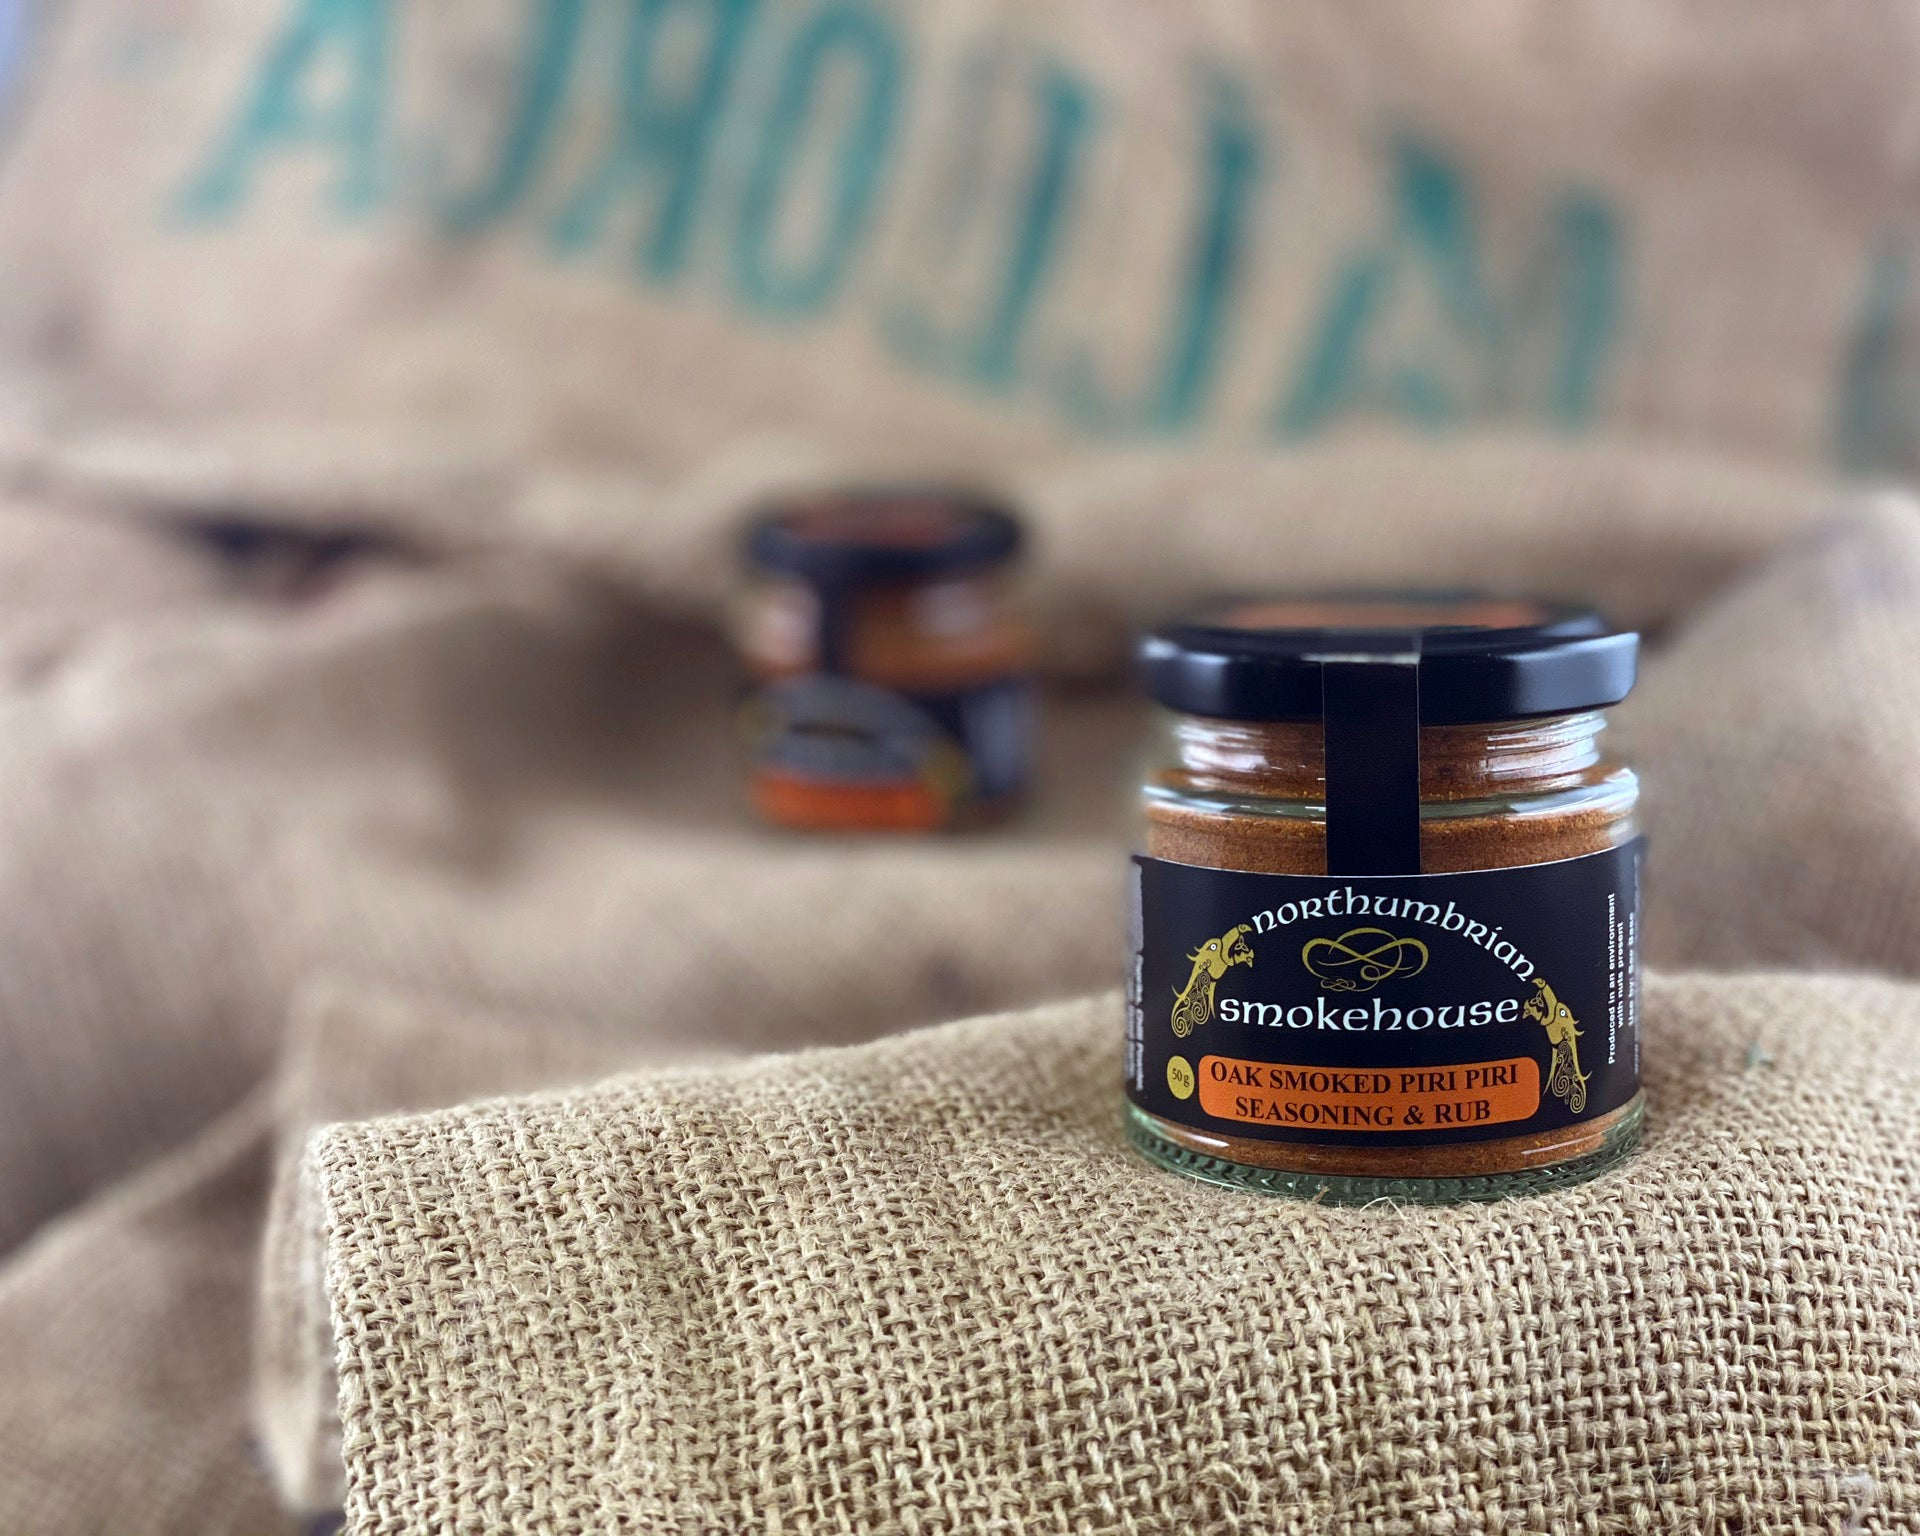 Northern Delicious: Northumbrian Smokehouse 'Oak Smoked Piri-Piri Seasoning & Rub'